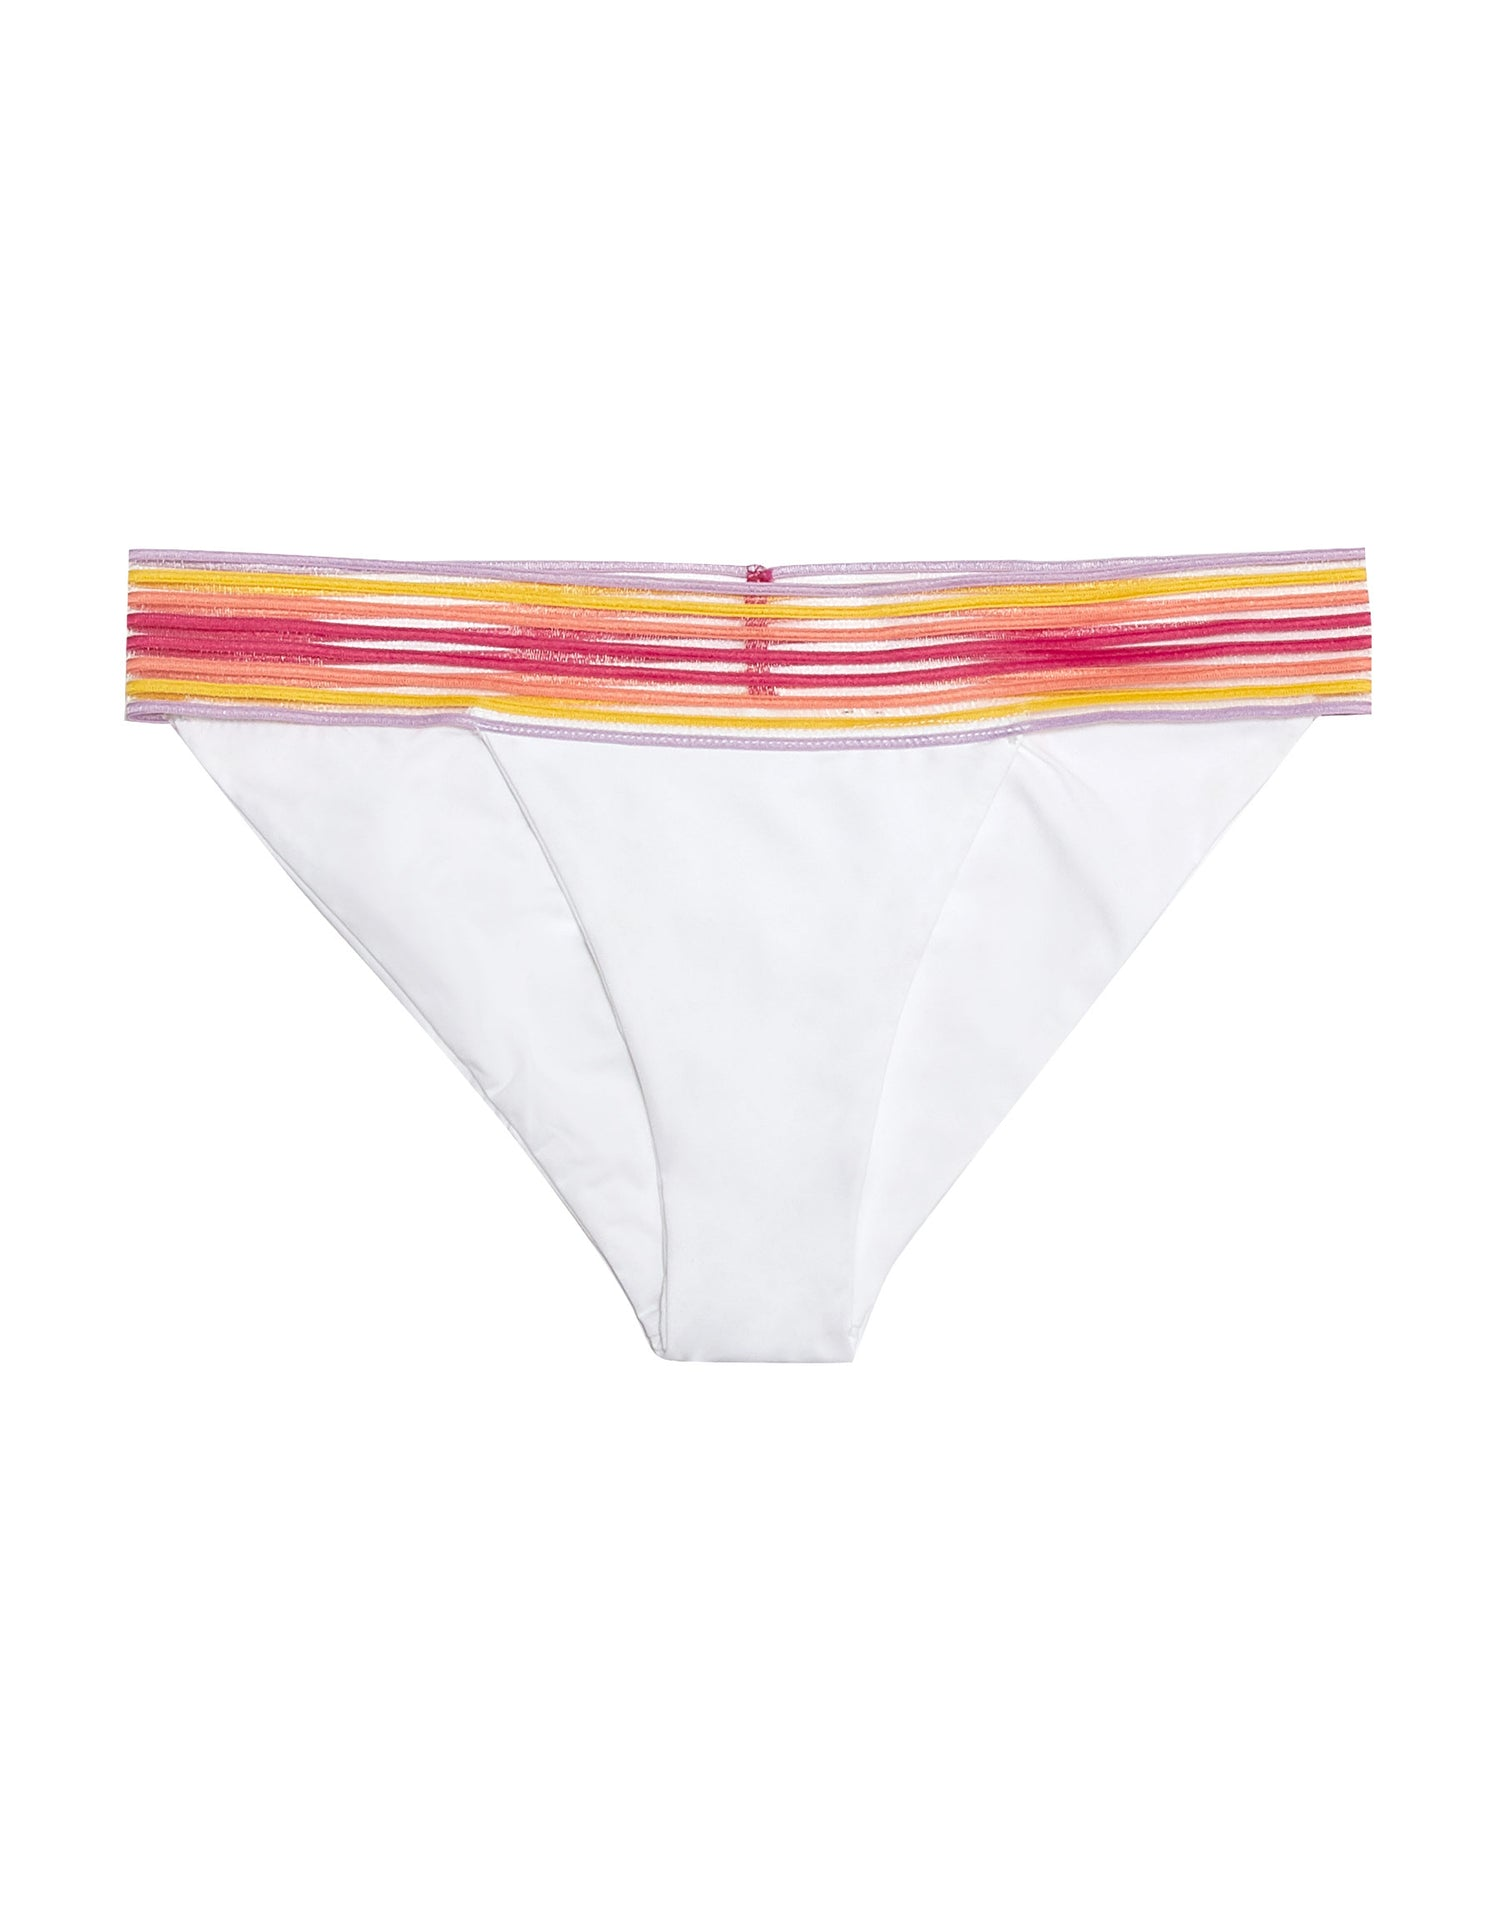 Sheer Addiction Skimpy Bikini Bottom in White with Pink/Yellow and Elastic Stripe Band - product view